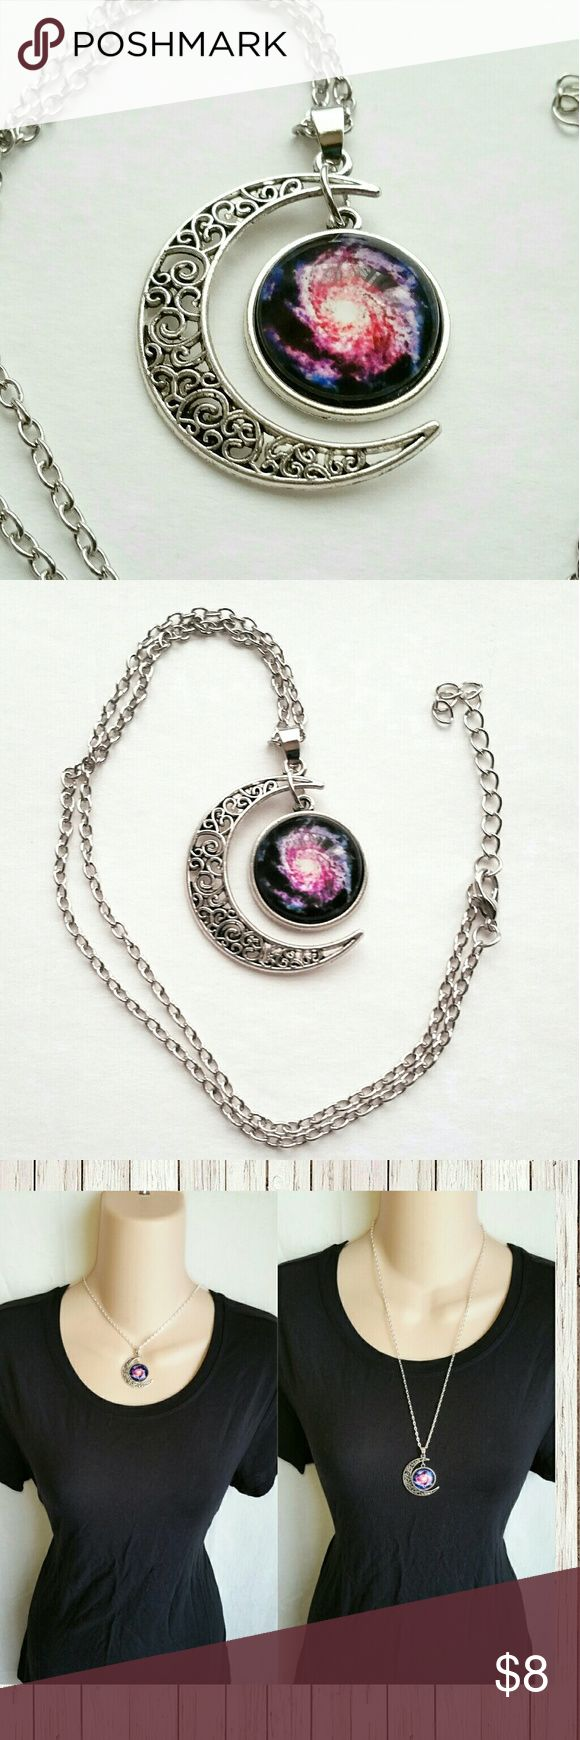 Colorful nebula milky way galaxy moon necklace Colorful nebula milky way Starburst Moon rainbow universe galaxy tumblr necklace pendant silver  New! Pick your length- 16 18 or 22 inch chain. Please specify when purchasing :)  Bundle for discounts!  Beautiful rainbow universe galaxy tumblr necklace. Pics showing various chain lengths..   #ashleisgoodies #moon #nebula #cosmos #celestial #crescent #colorful #rainbow #white #pagan #silver #universe #galaxy #tumblr #necklace #pendant #jewelry…